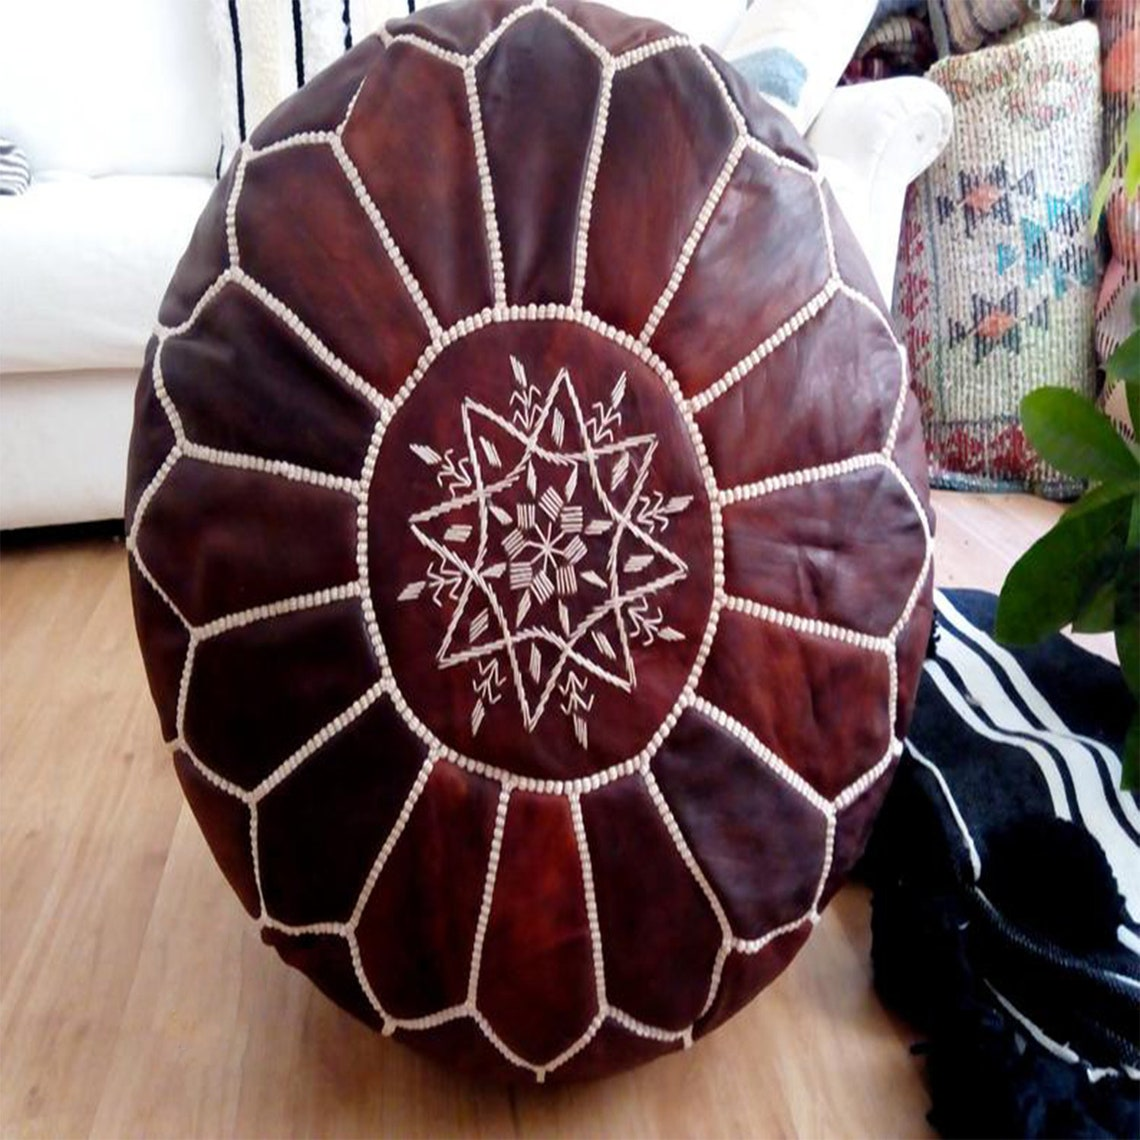 50% OFF, Moroccan pouf, outdoor furniture, ottoman pouffe, Moroccan leather, leather poufs, Living room, wedding, vintage, moroccan pouffe